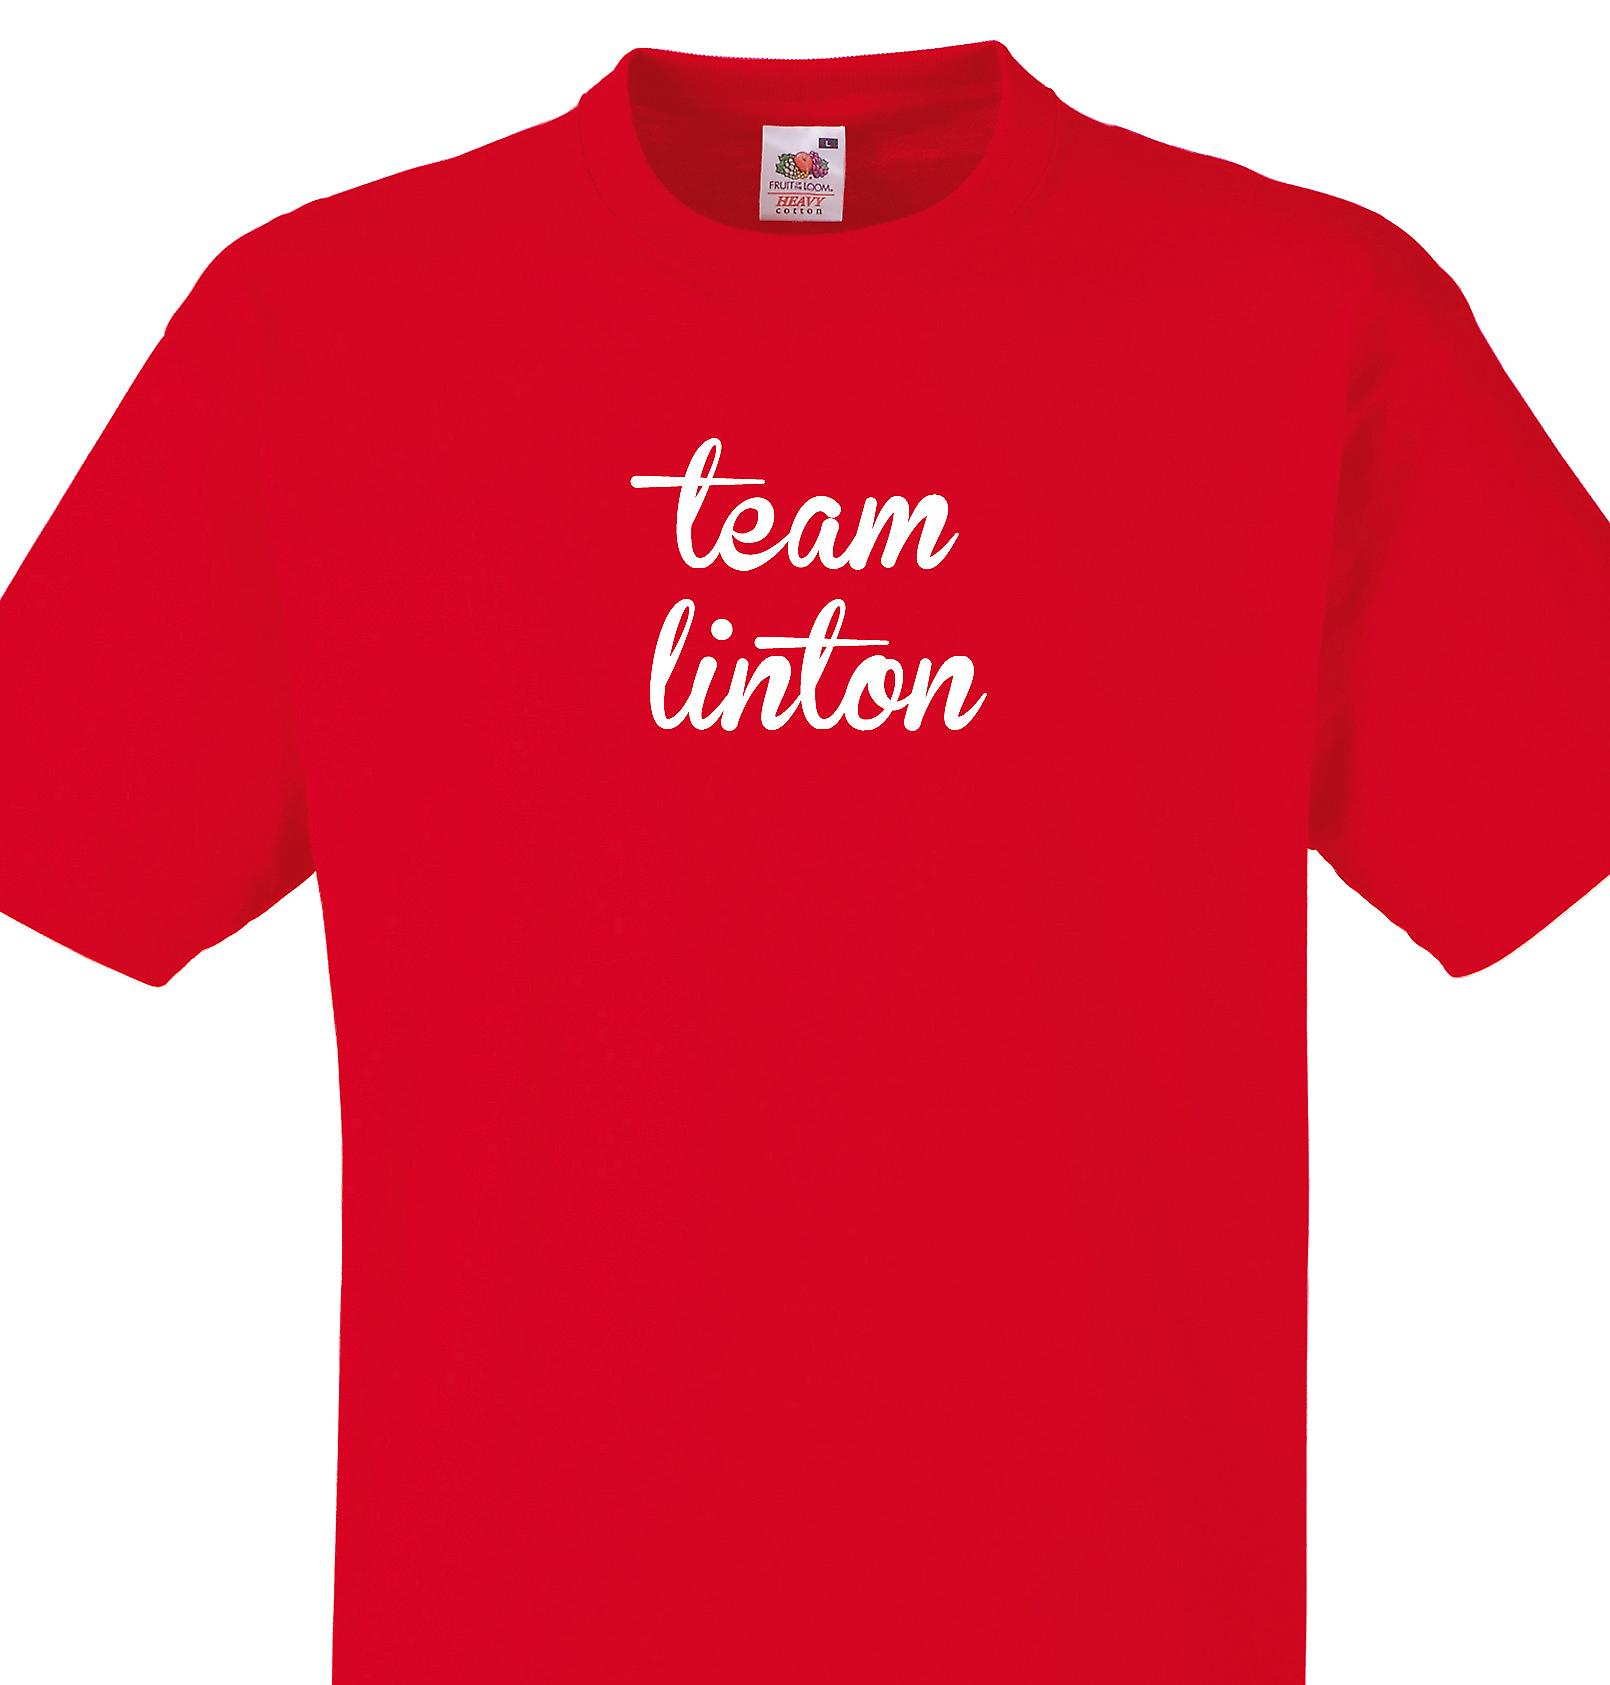 Team Linton Red T shirt